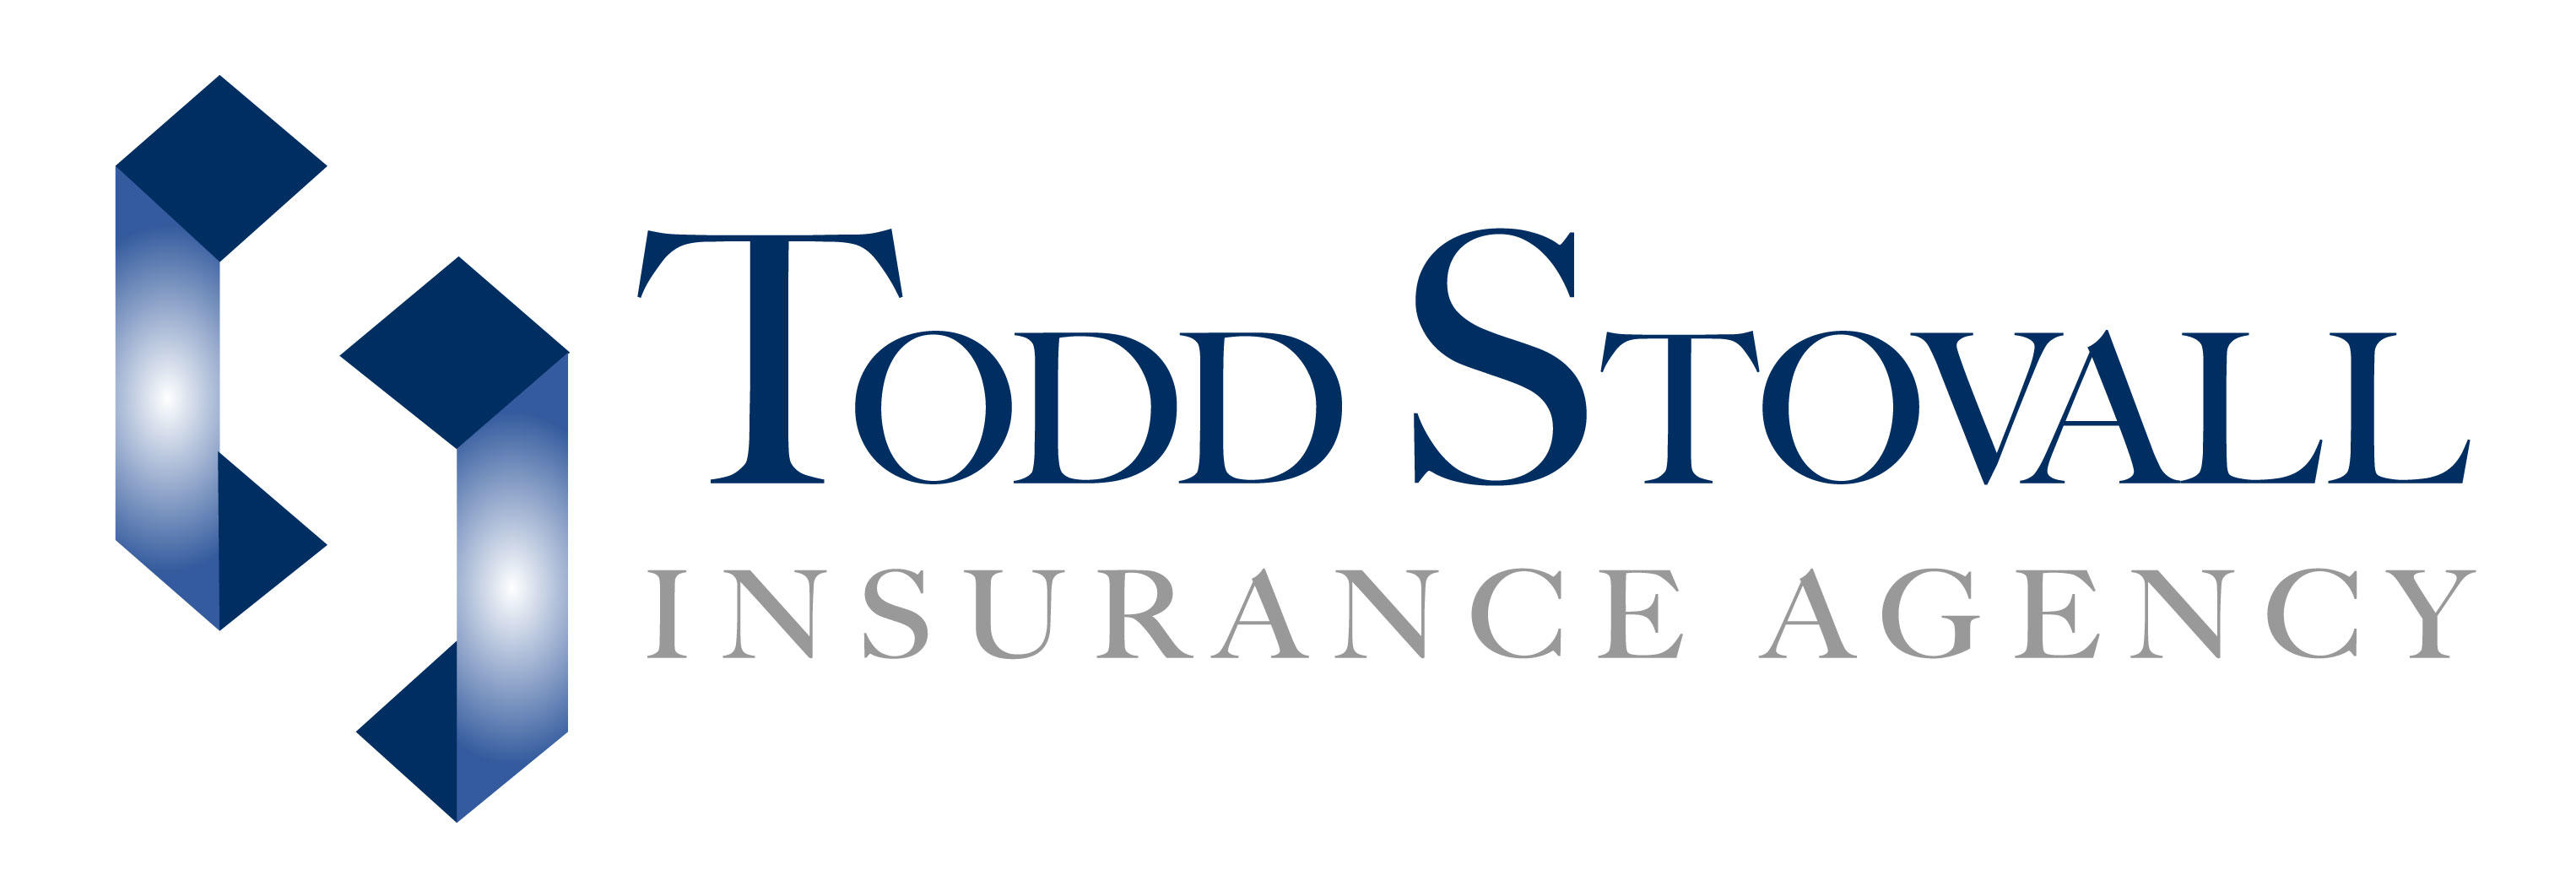 Todd Stovall: Allstate Insurance image 11